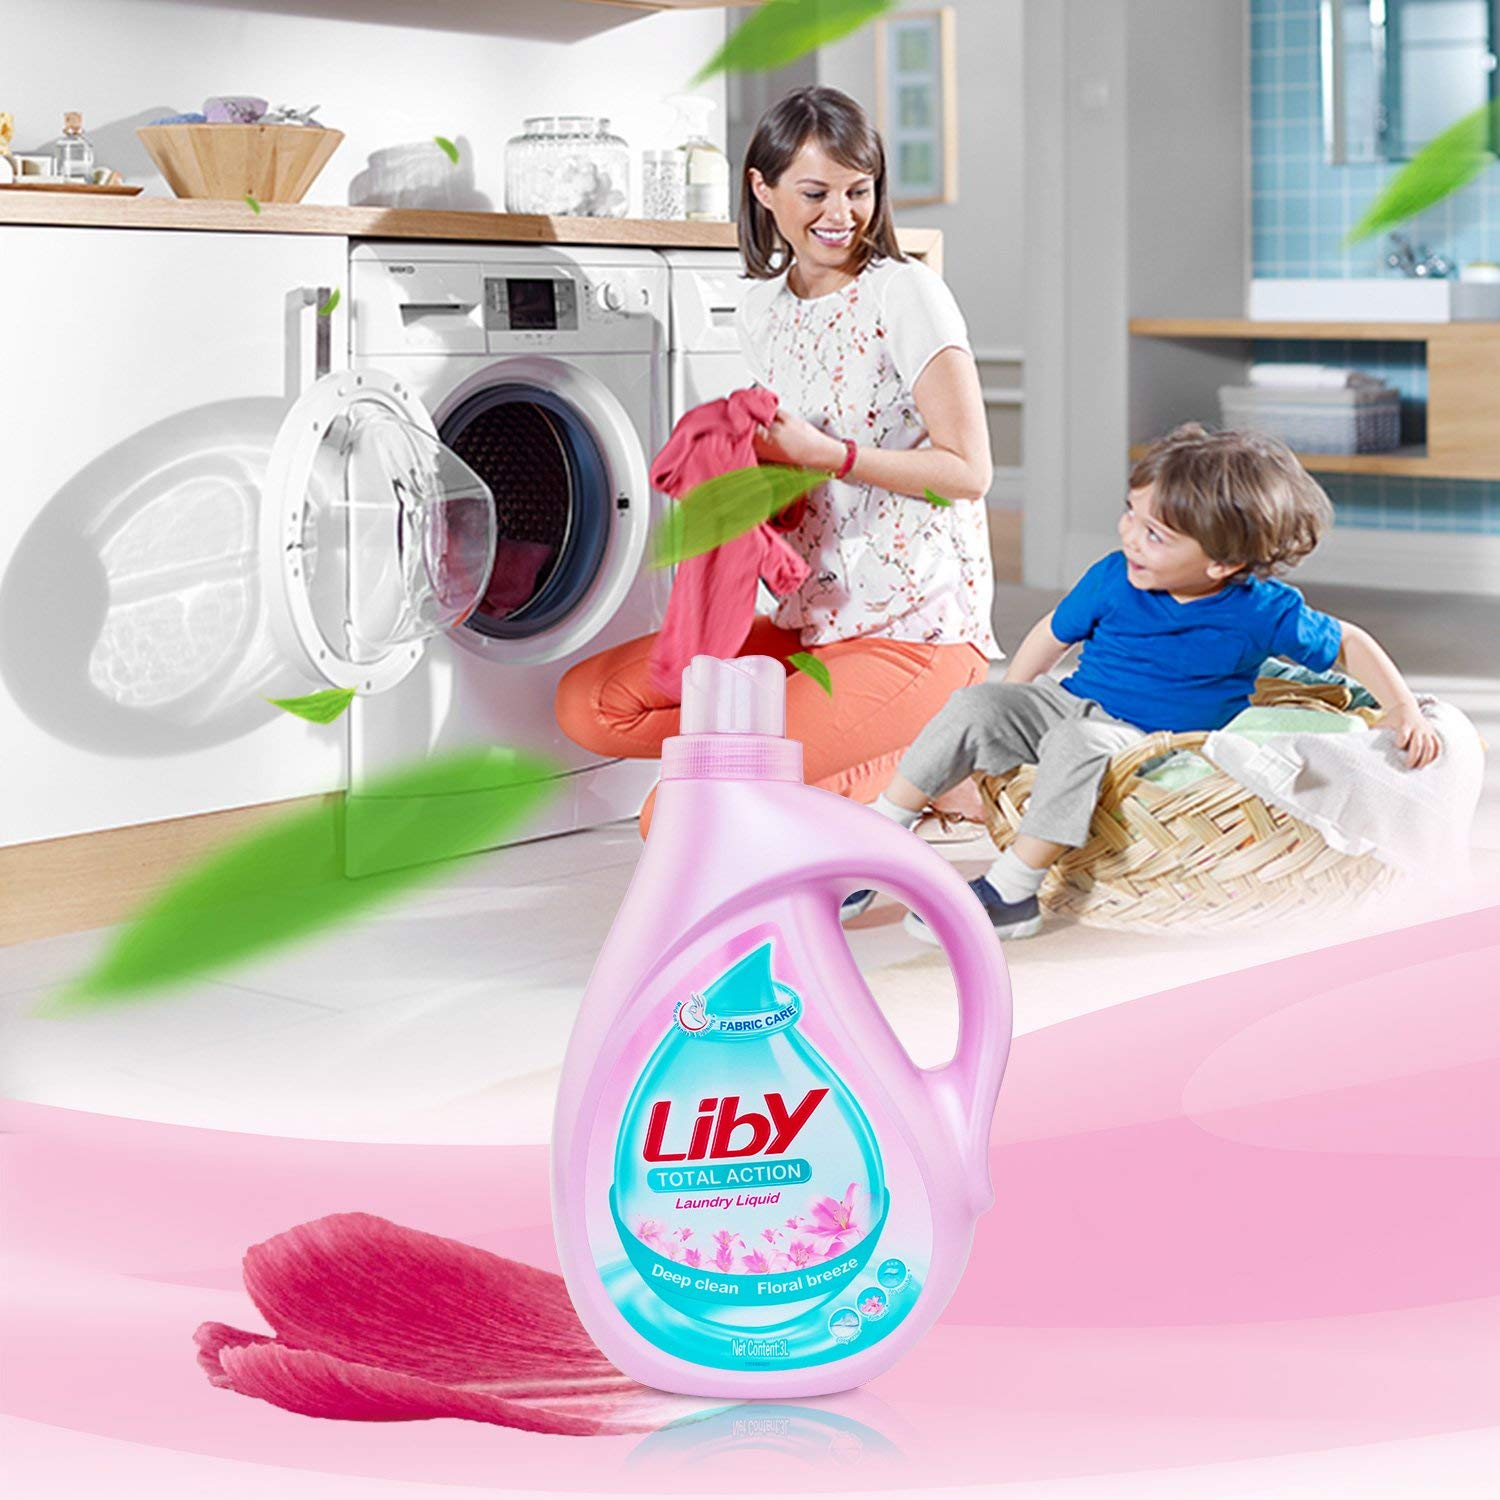 LIBY Liquid Laundry Detergent (101 oz)